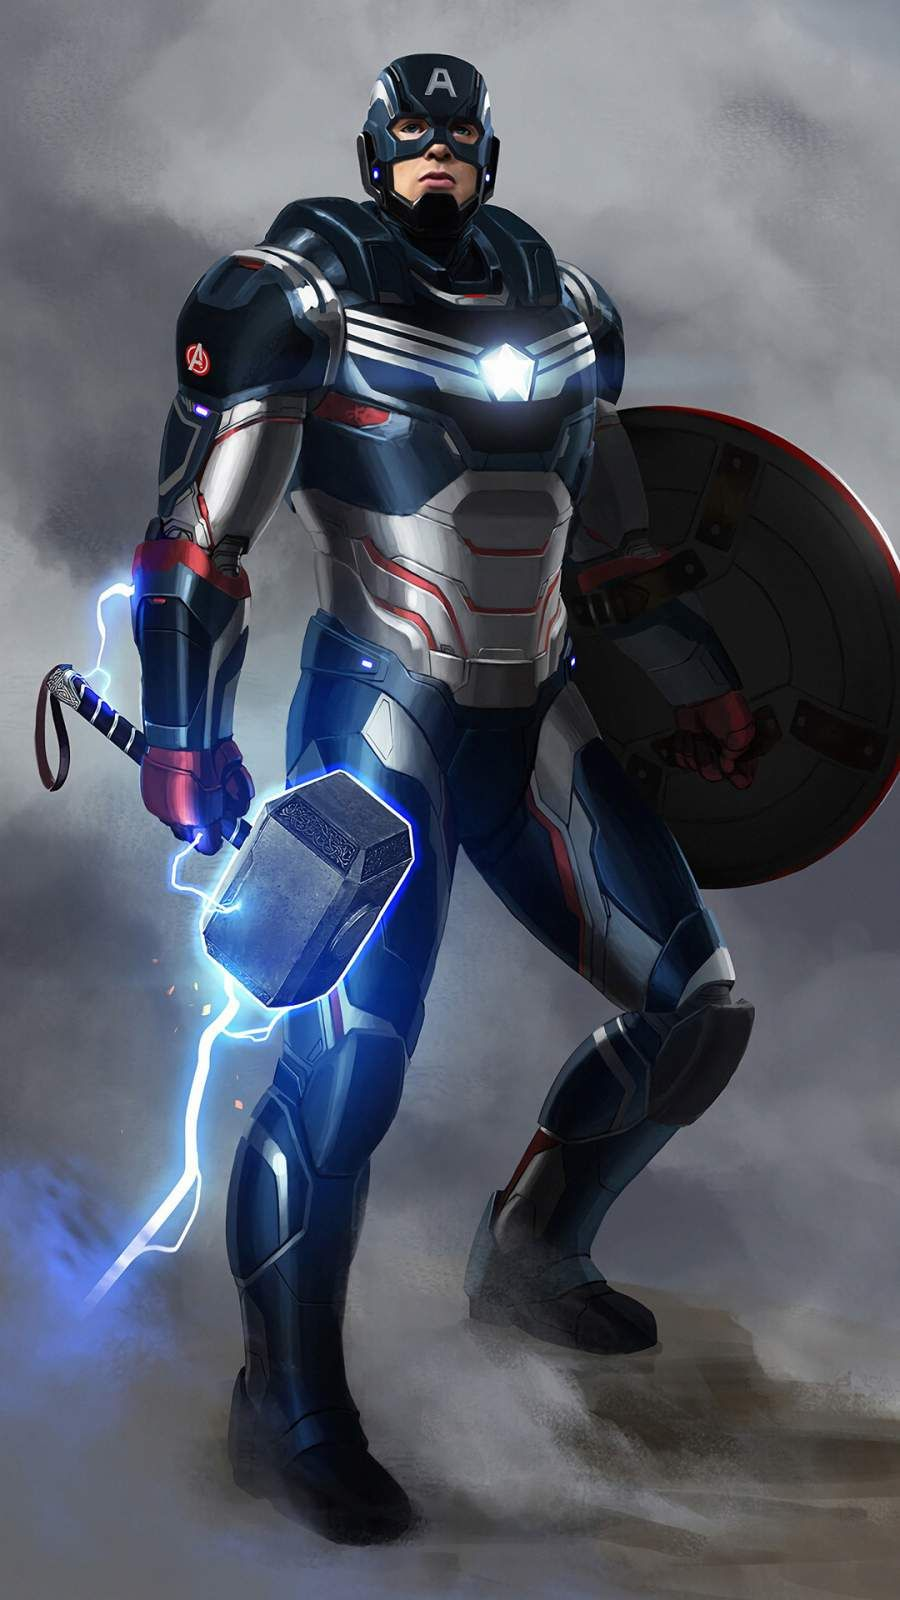 Captain America Armored Iphone Wallpaper In 2020 Marvel Superhero Posters Marvel Comics Superheroes Captain America Artwork